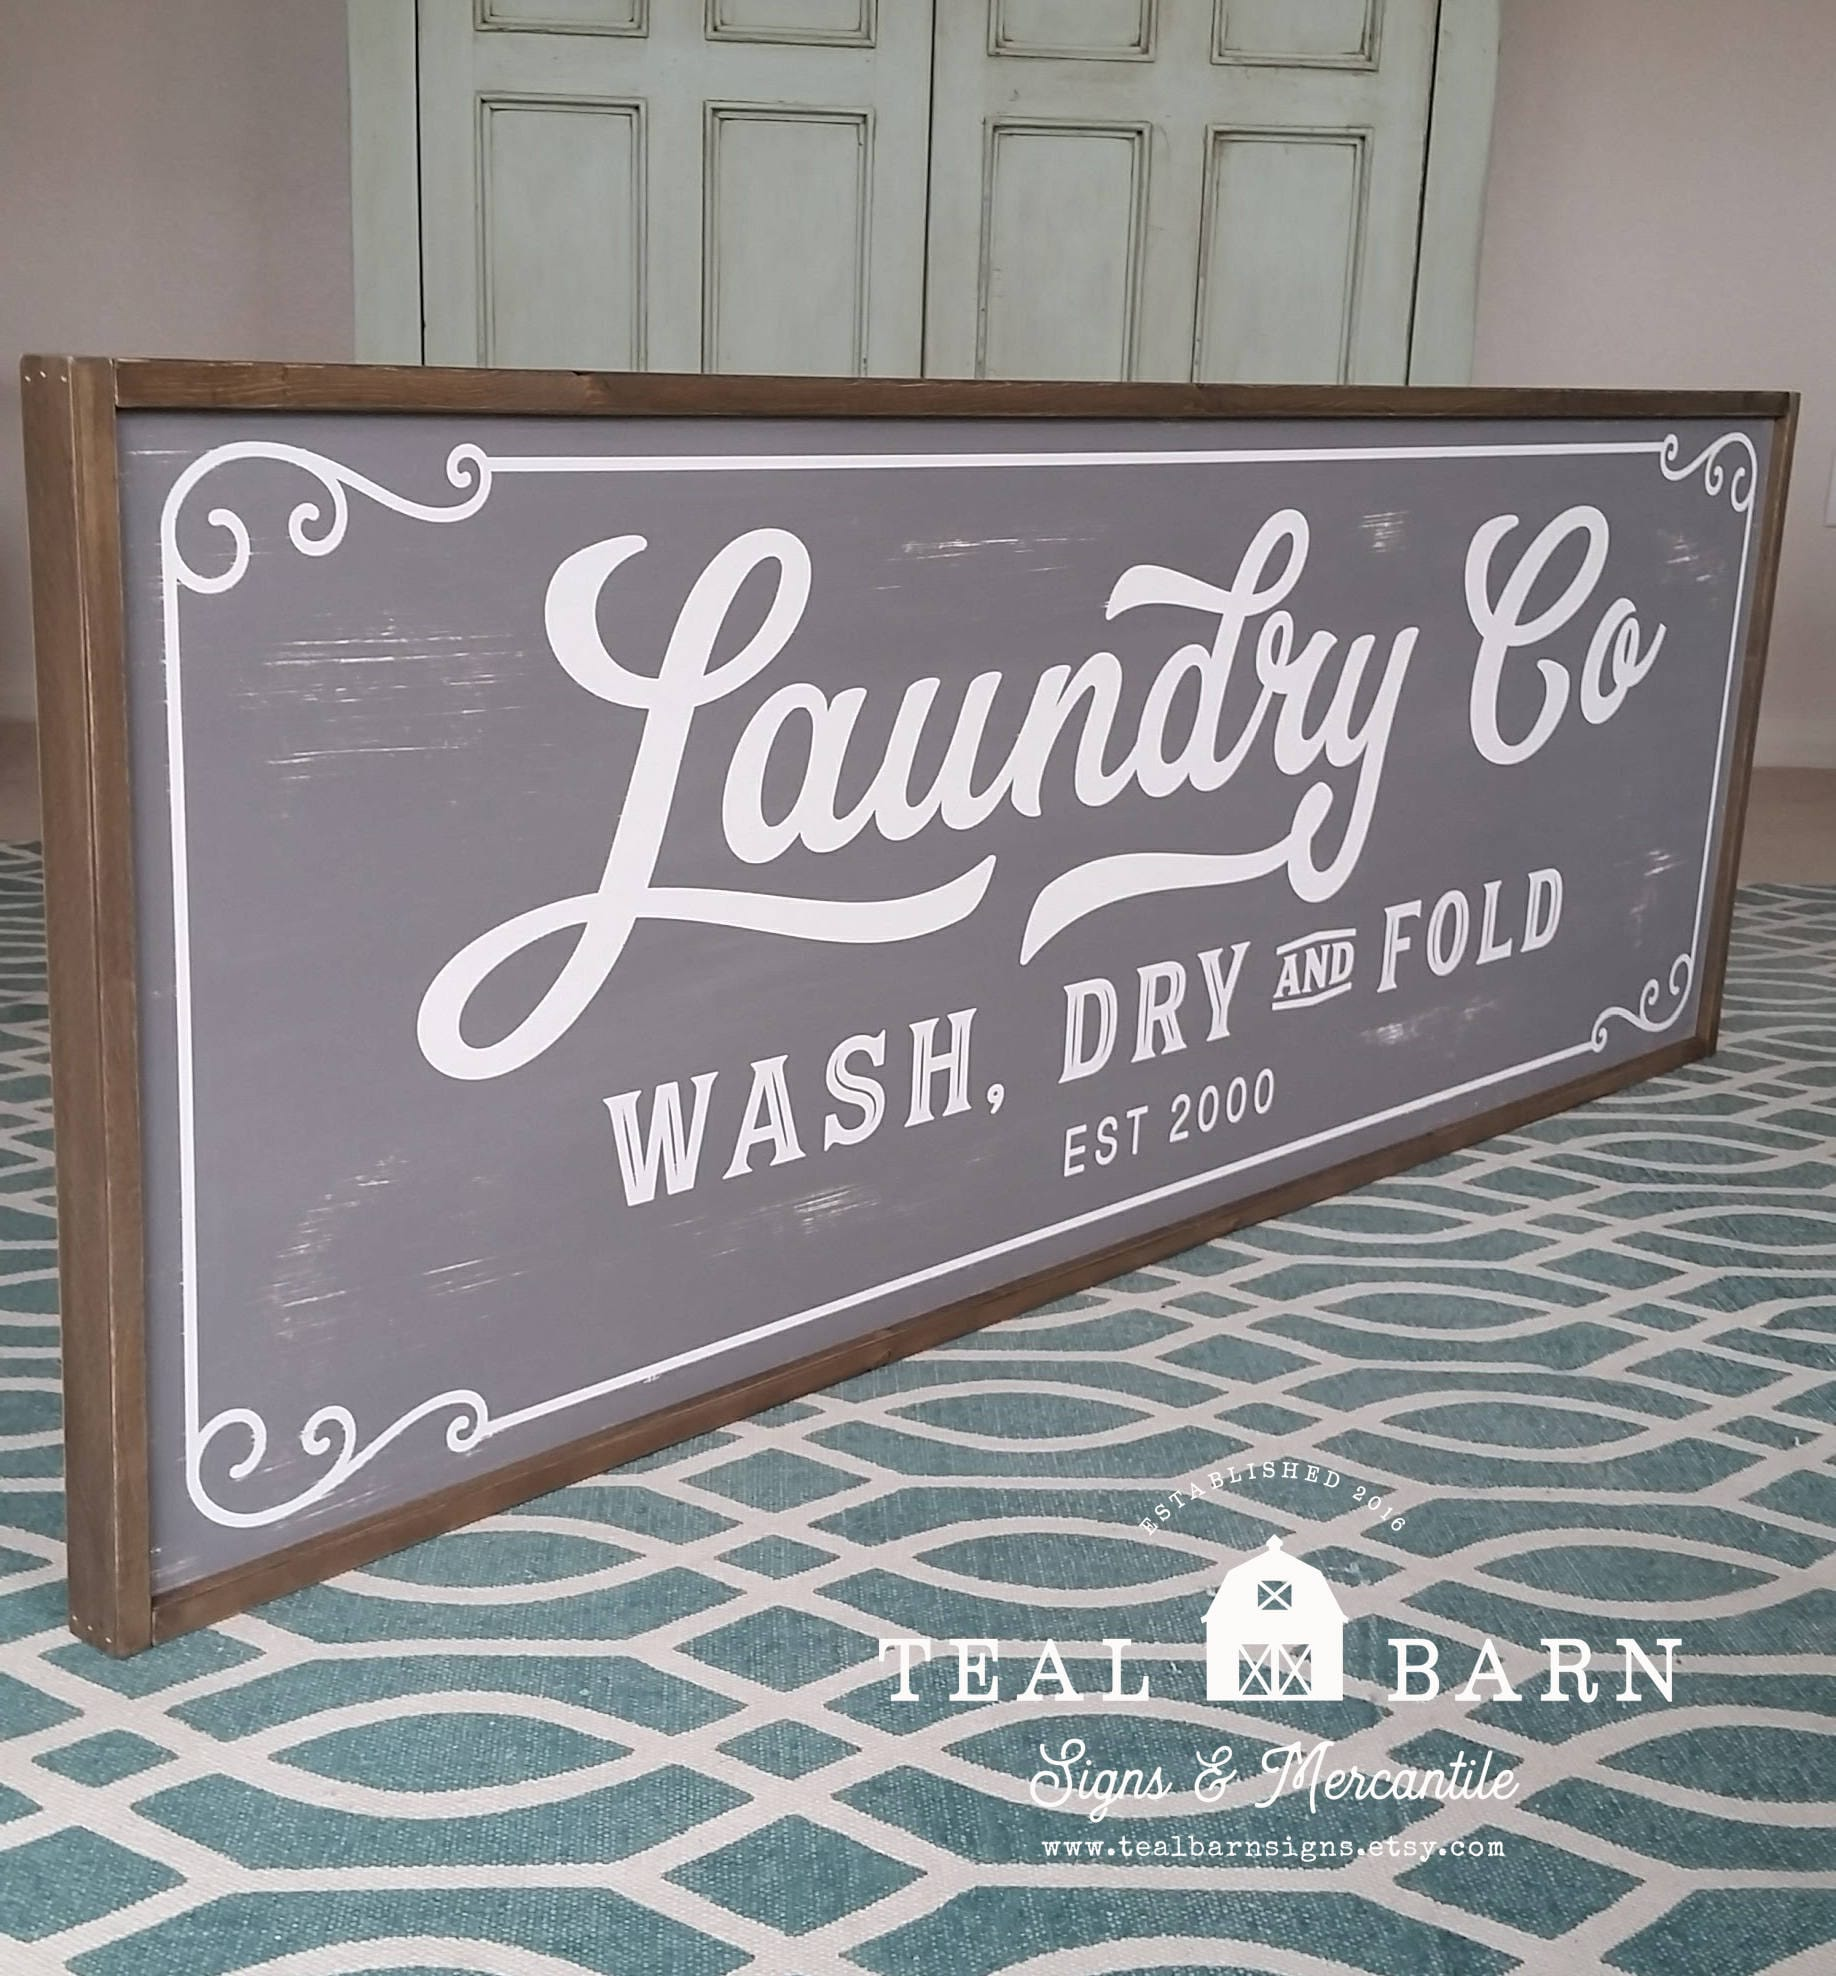 Laundry And Co Sign Laundry Co Wash Dry And Fold Personalized Sign Magnolia